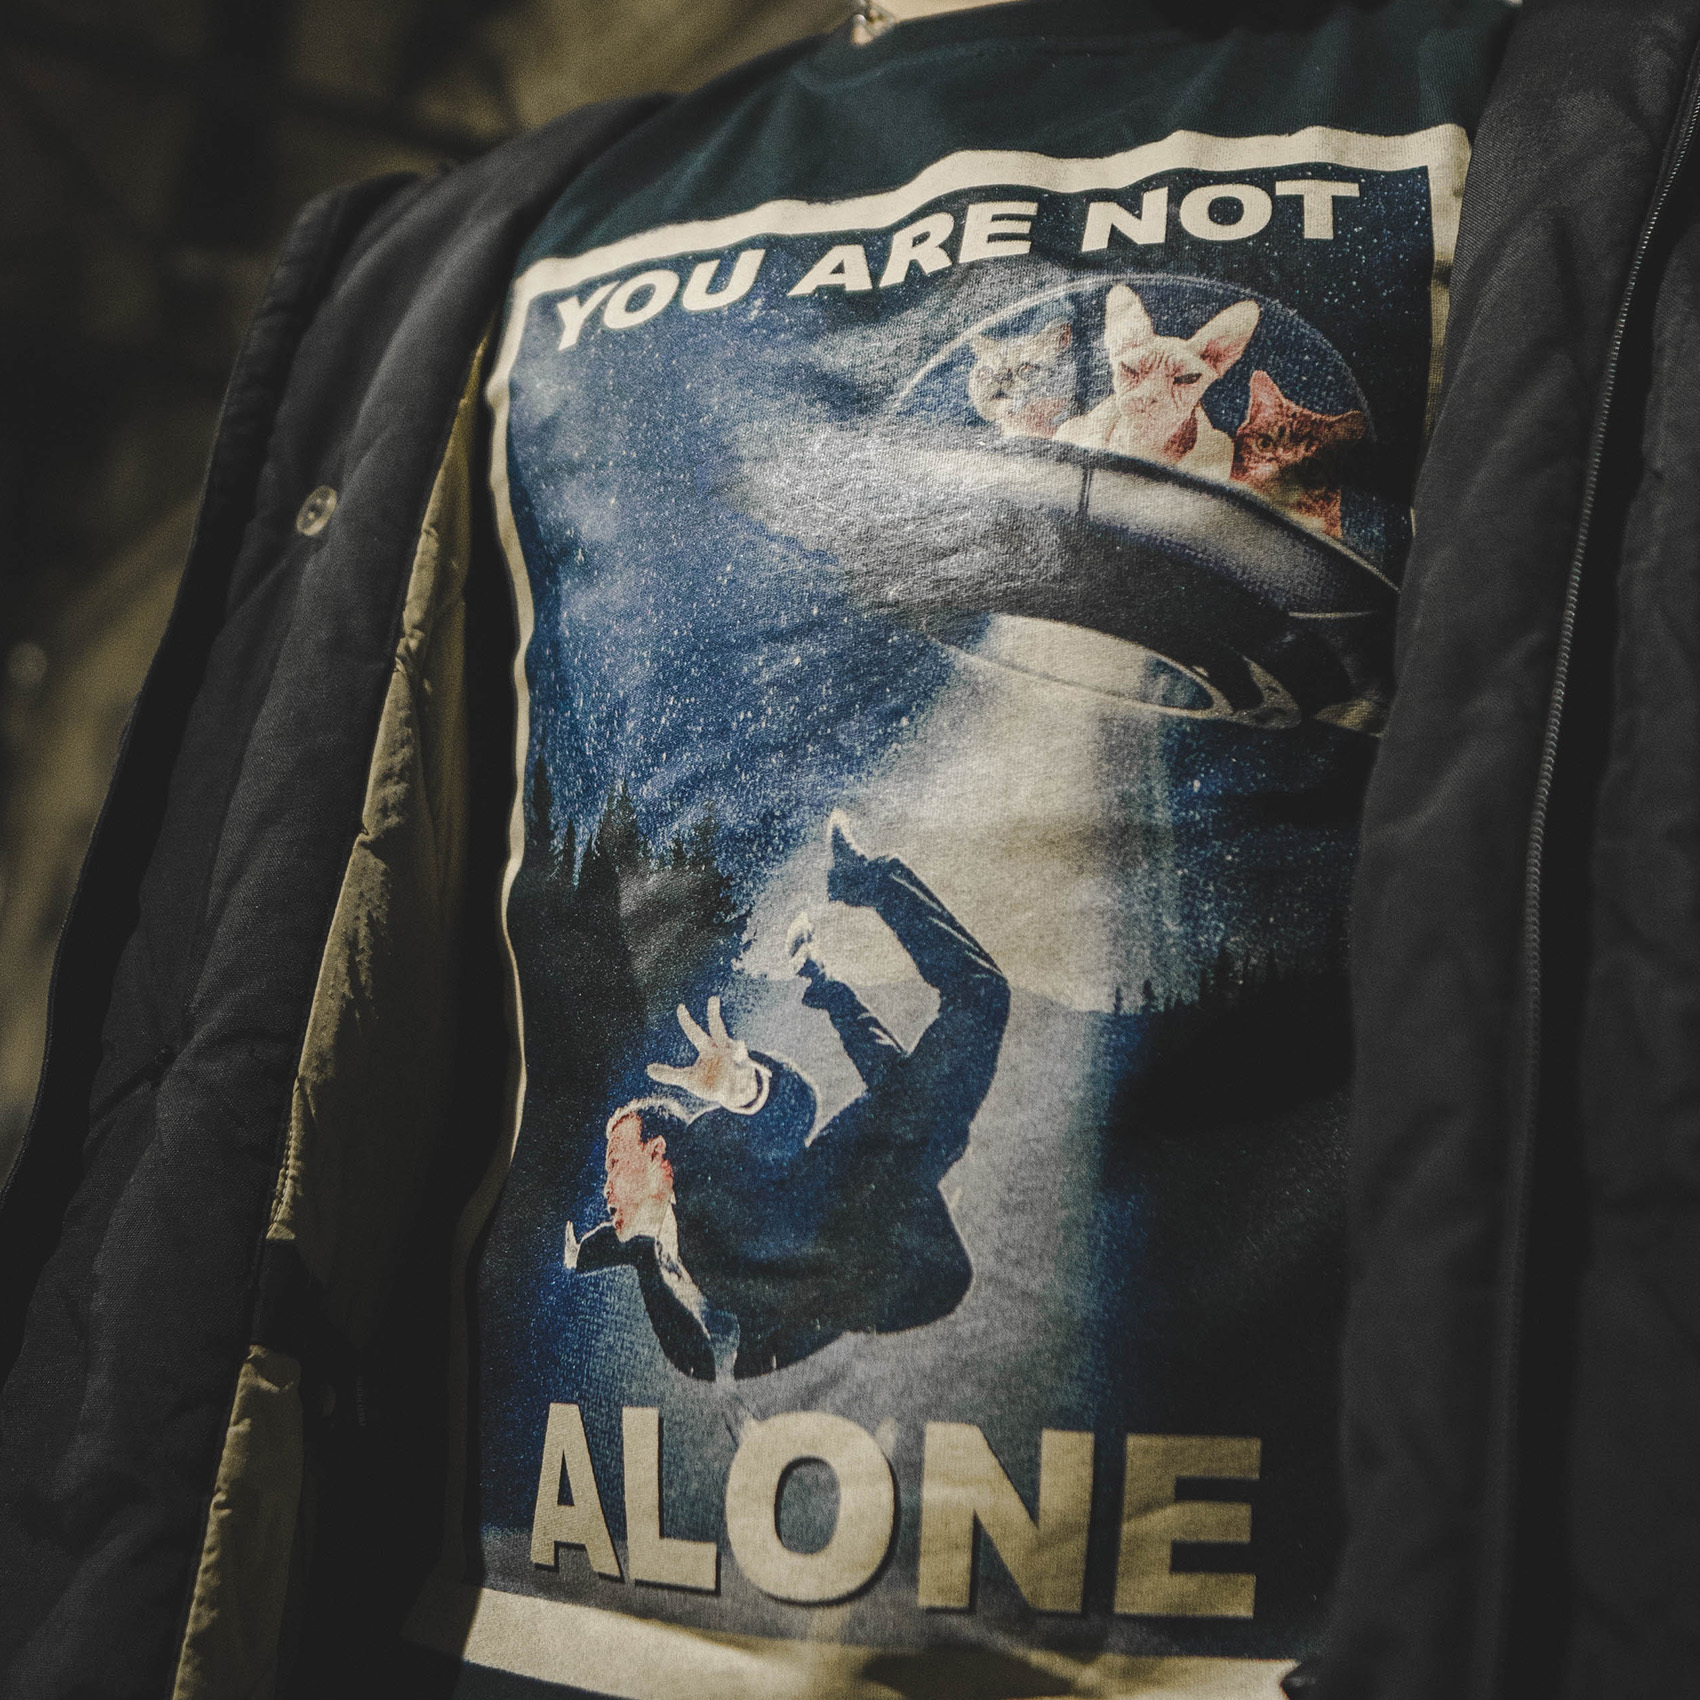 You are not alone / футболка